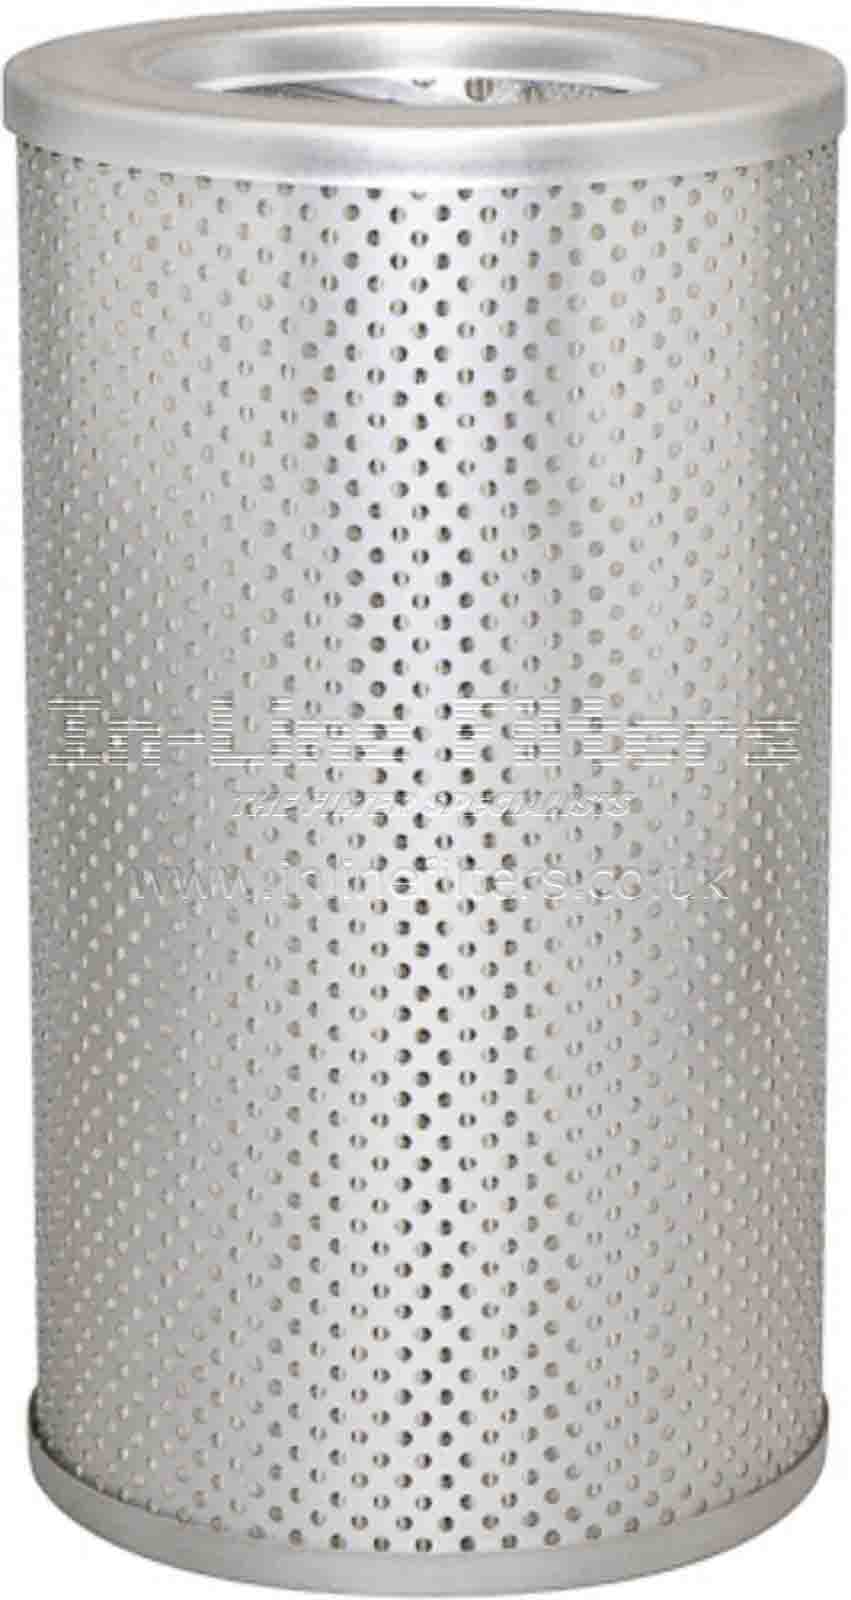 FBW-PT9418 FILTER-Hydraulic(Brand Specific-Baldwin PT9418) - Click Image to Close